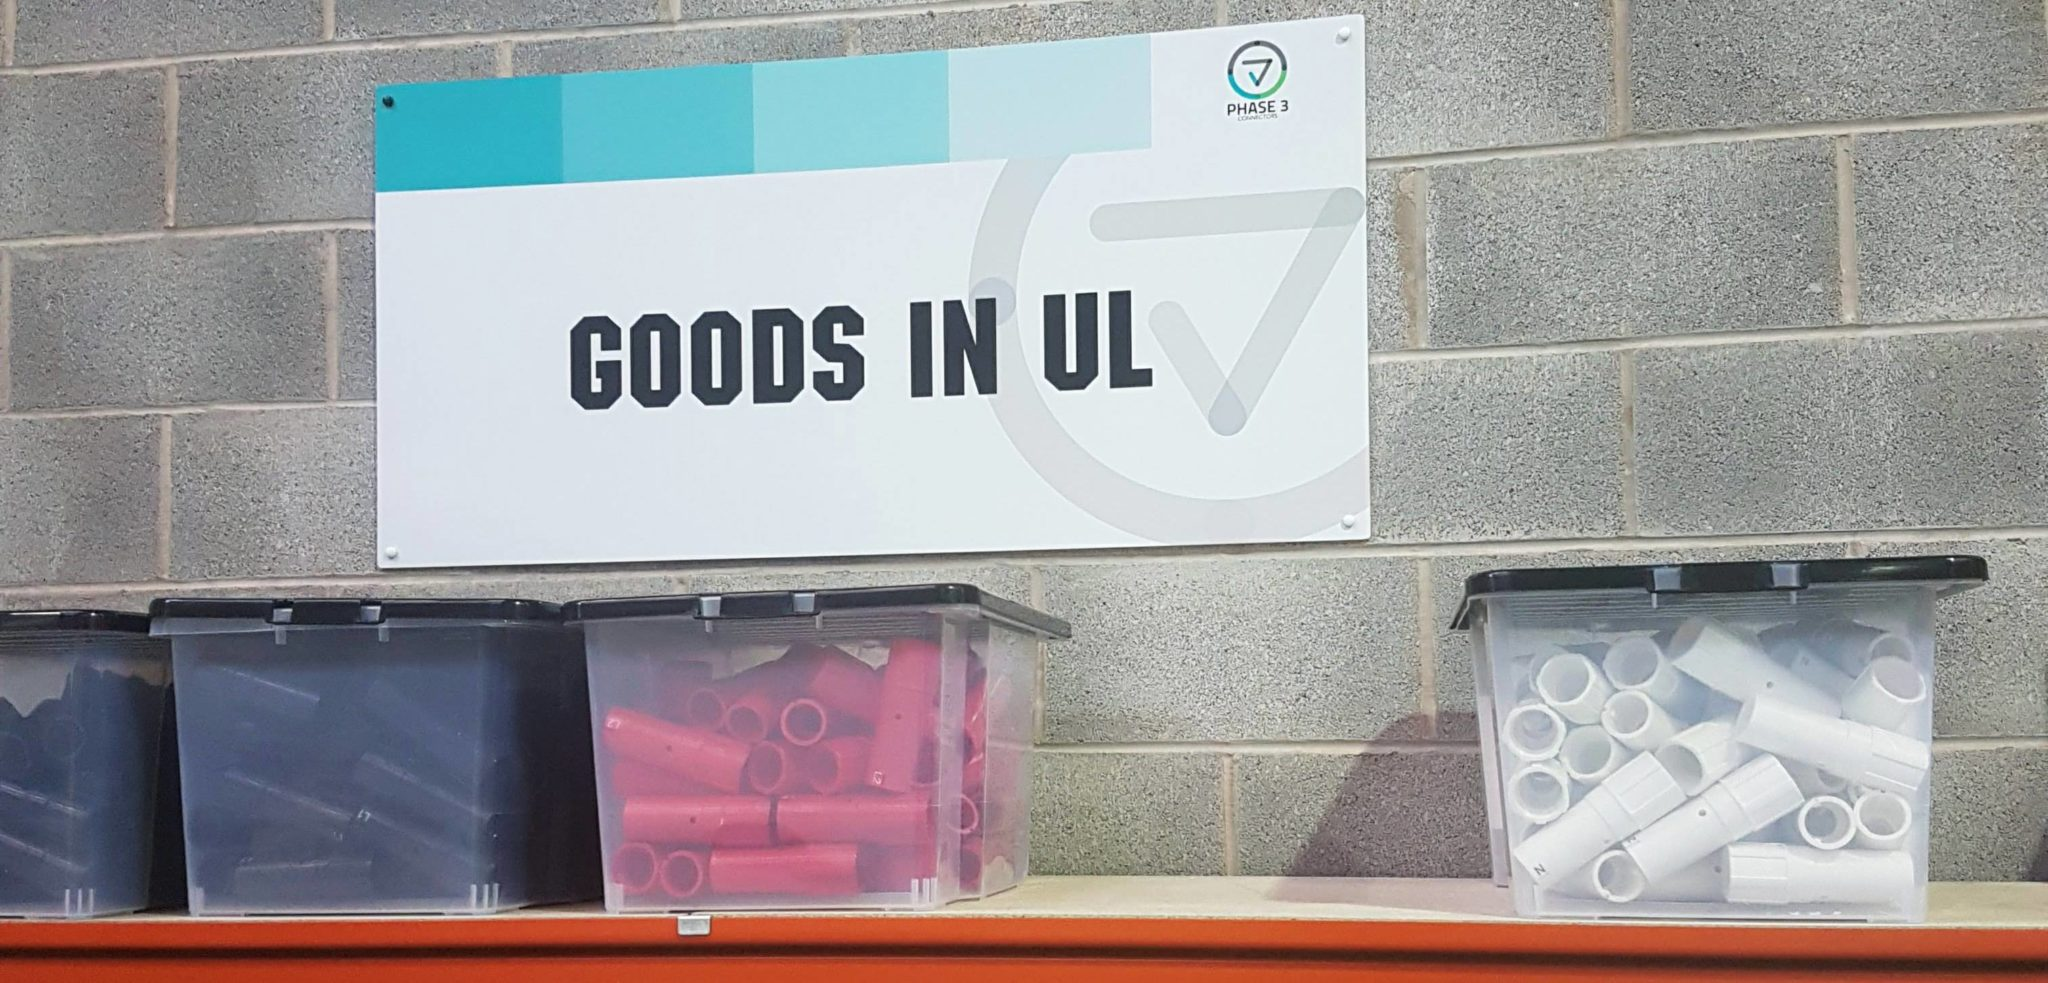 Goods in UL